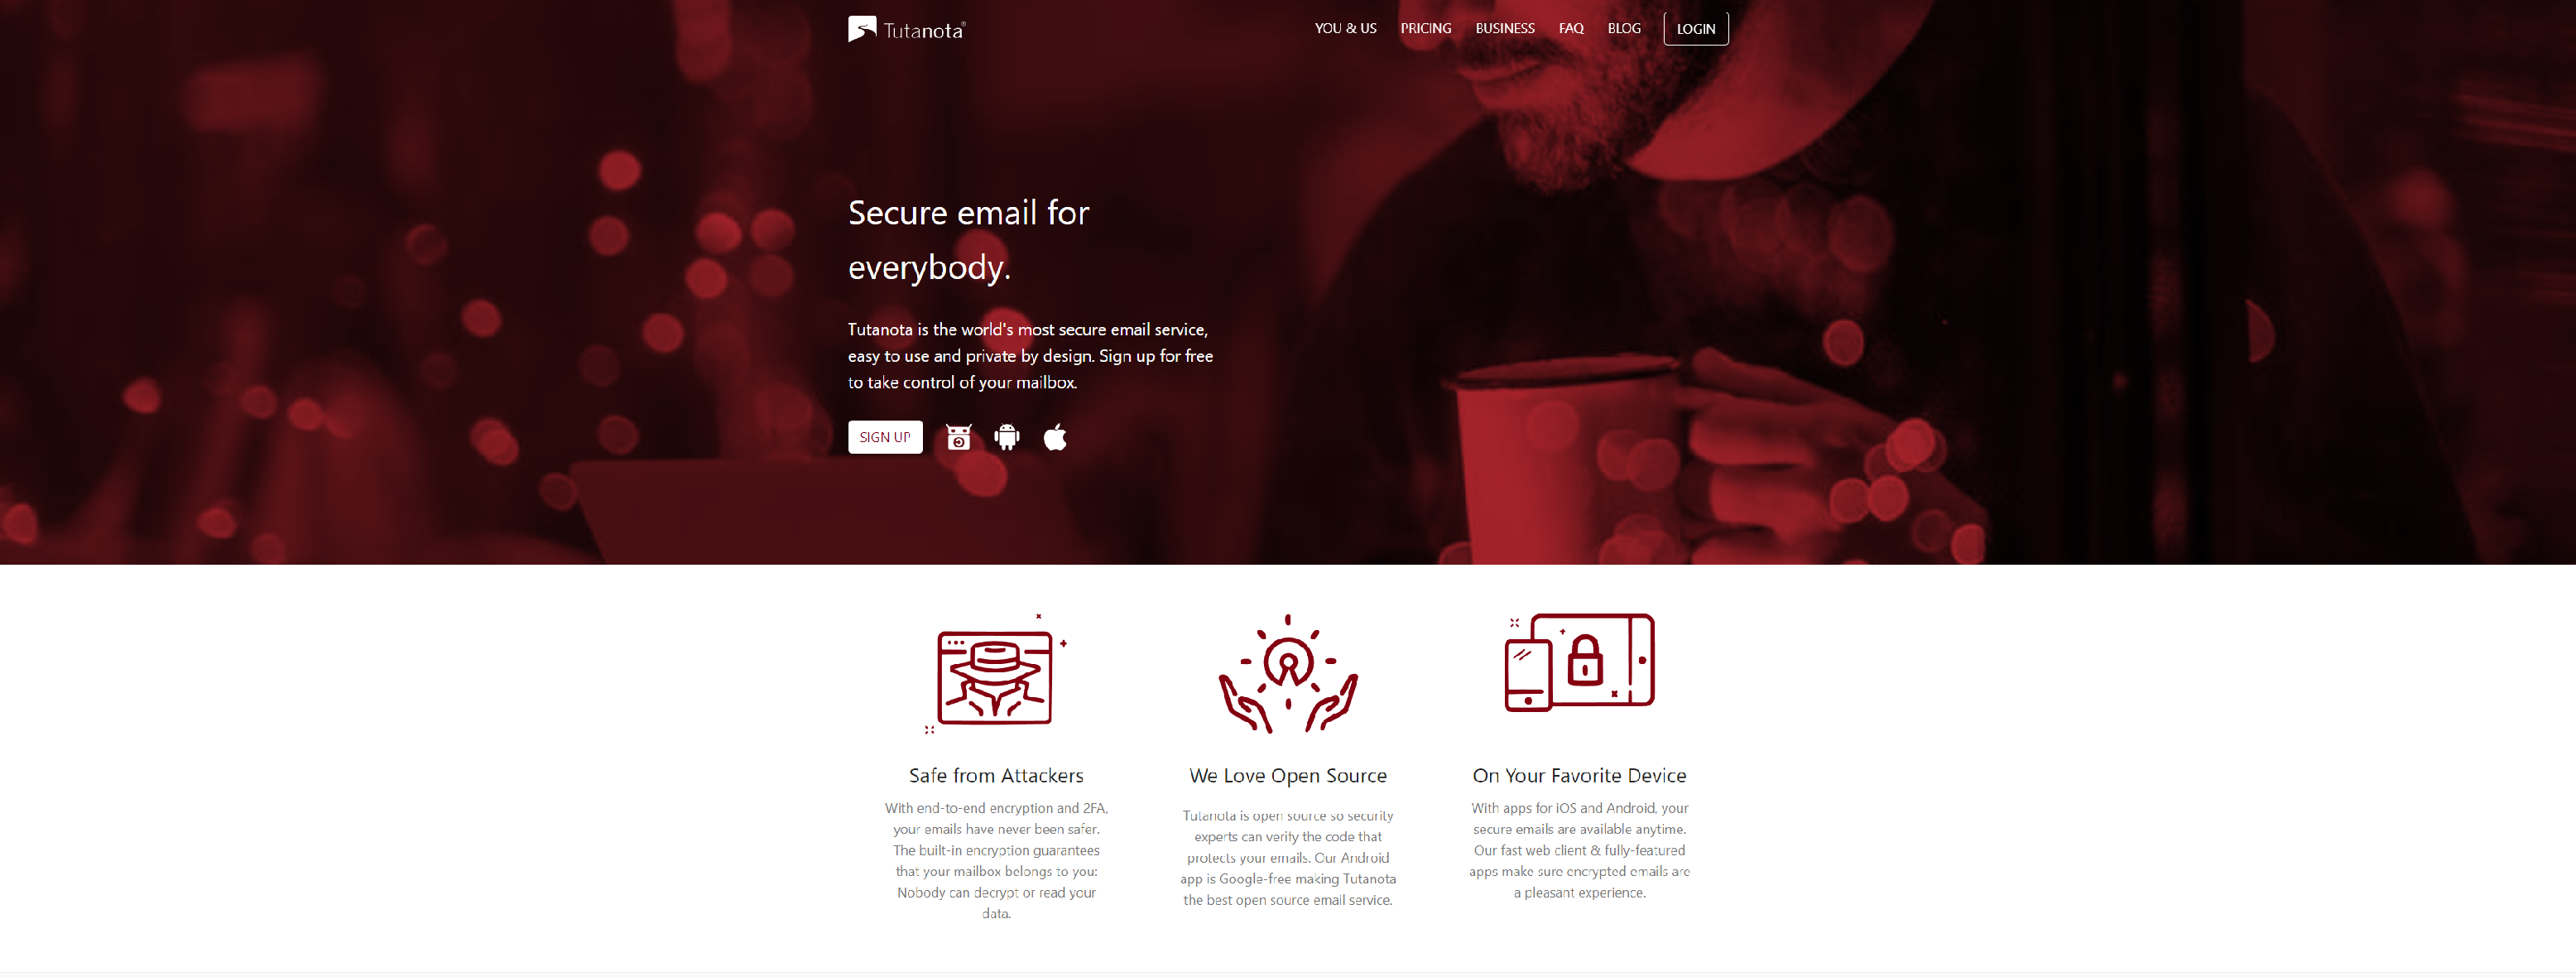 Top 13 Best Secure Email Providers for Small Business - 2019 | Cllax